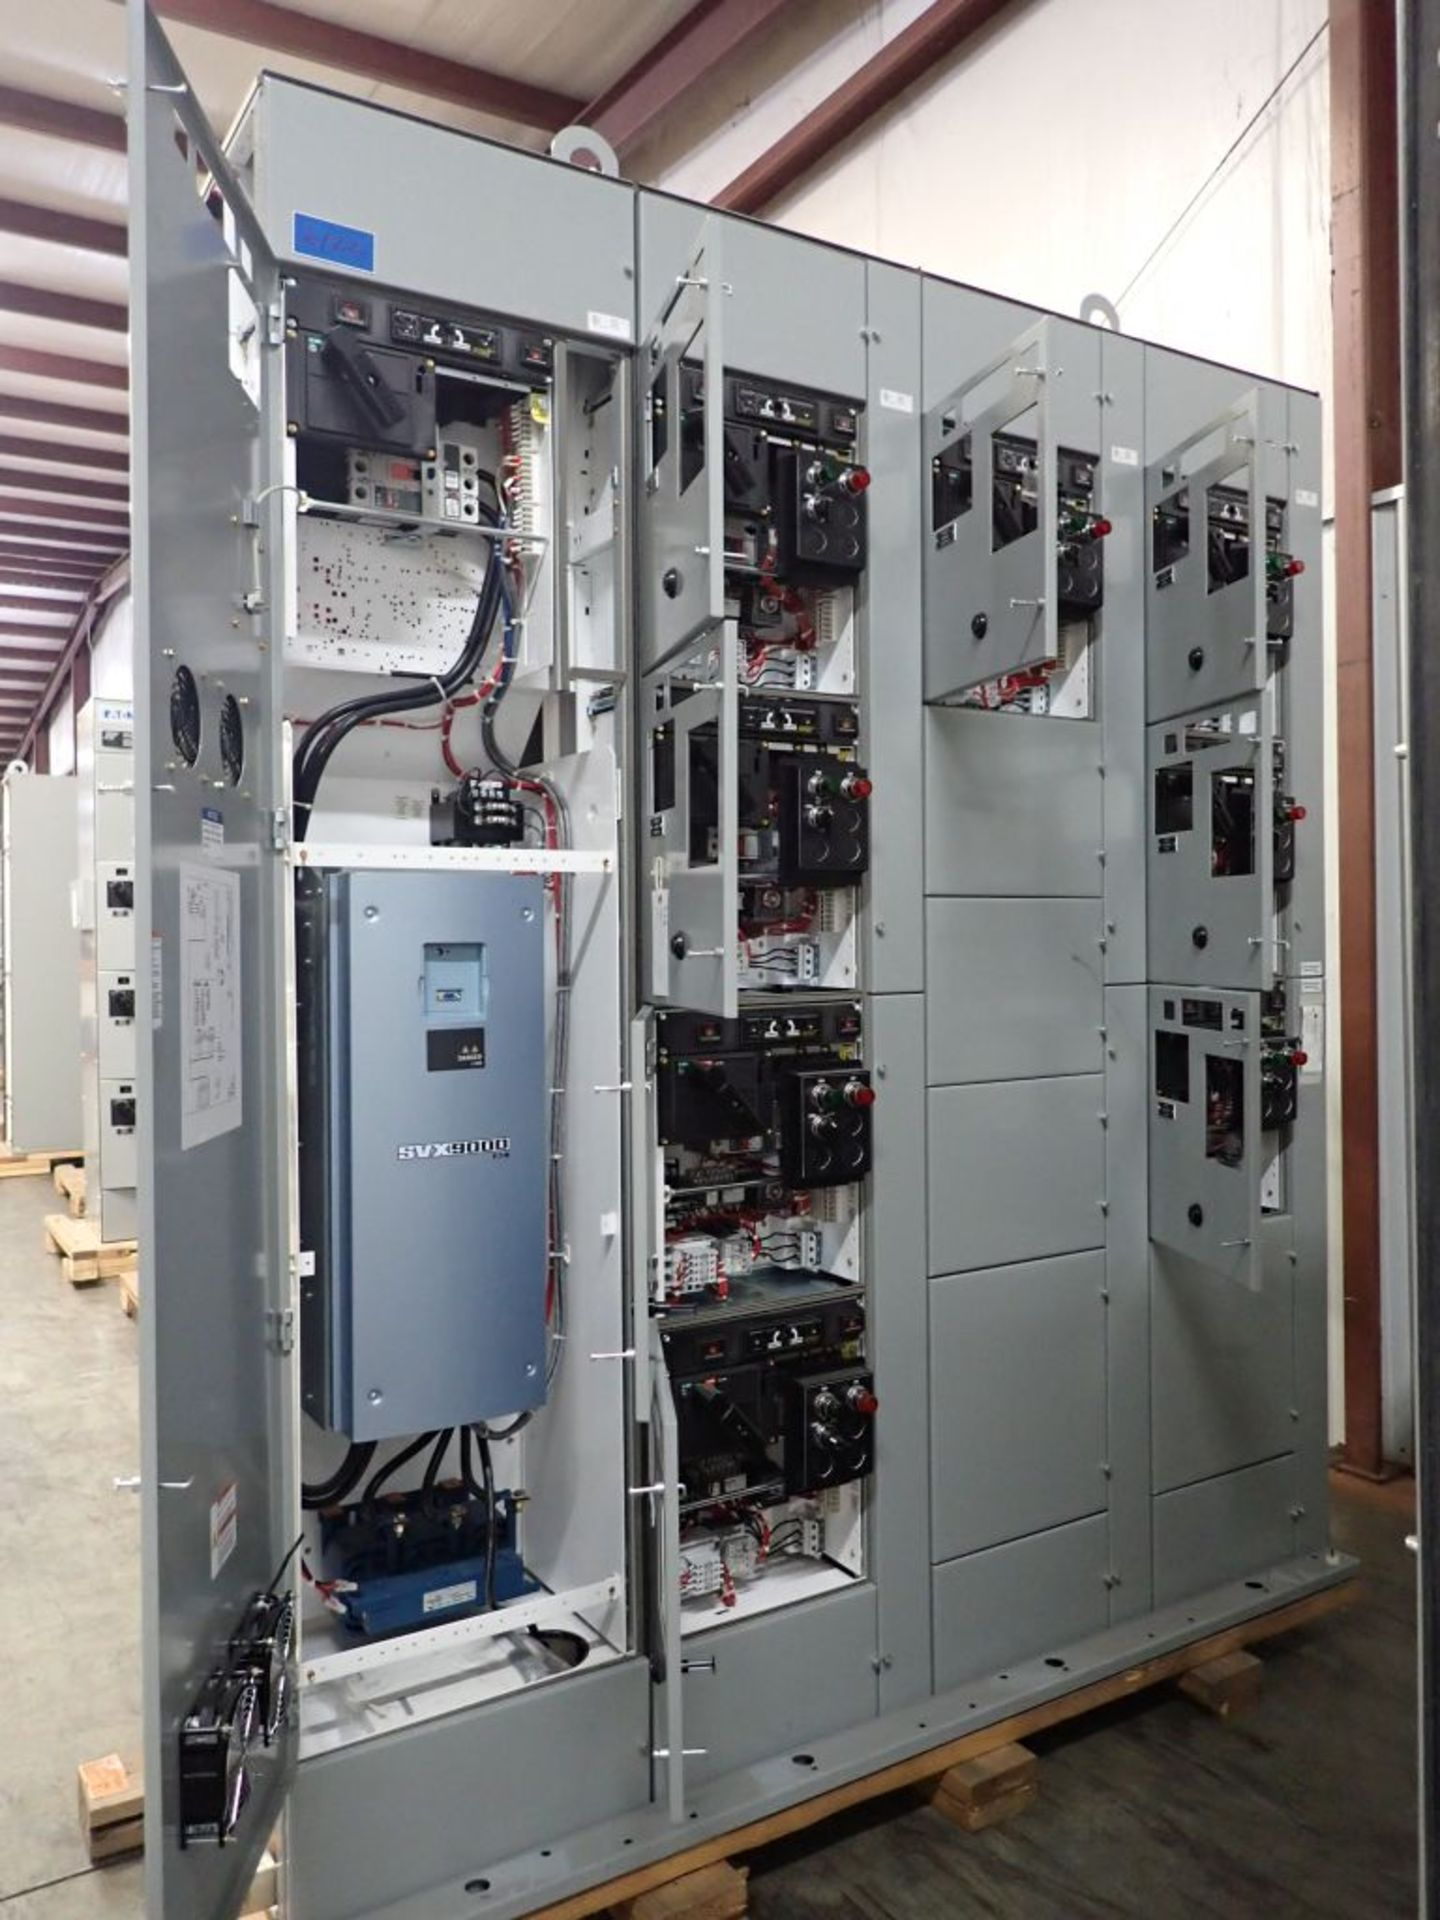 Eaton Freedom 2100 Series Motor Control Center | (11) F206-30A-10HP; (5) F206-15A-10HP; (1) SVX900- - Image 8 of 102